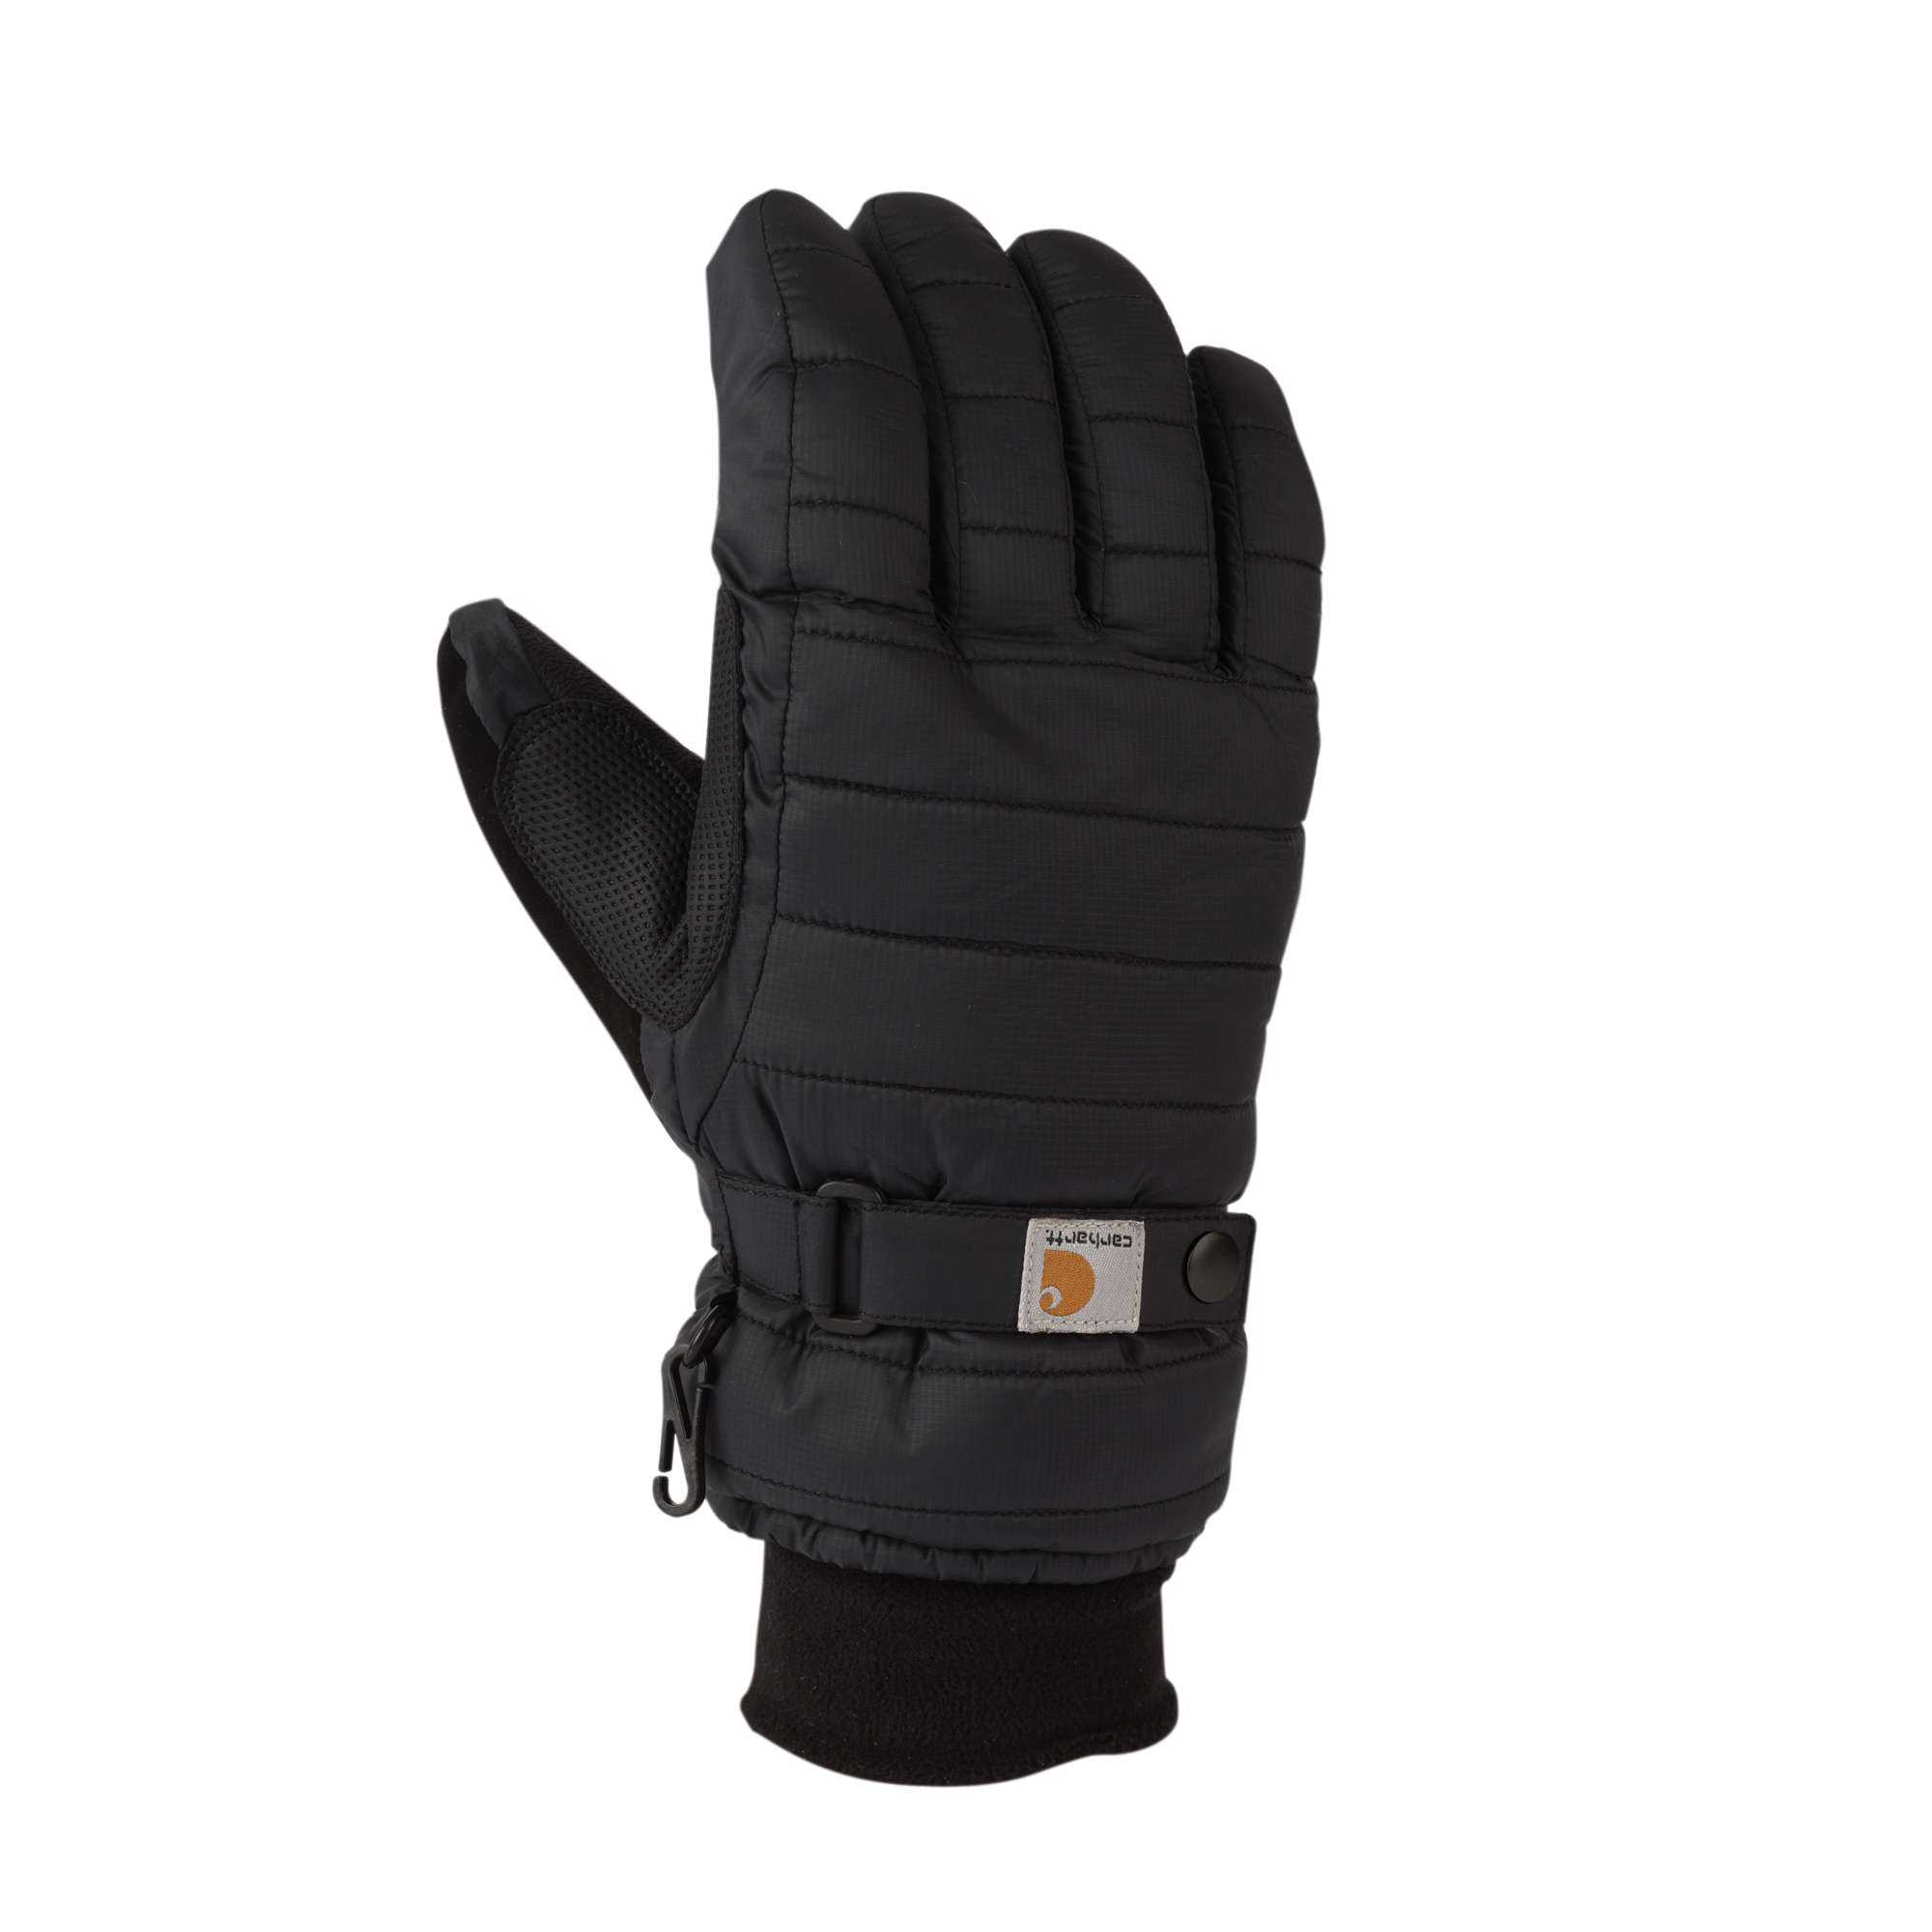 Carhartt Quilts Insulated Glove